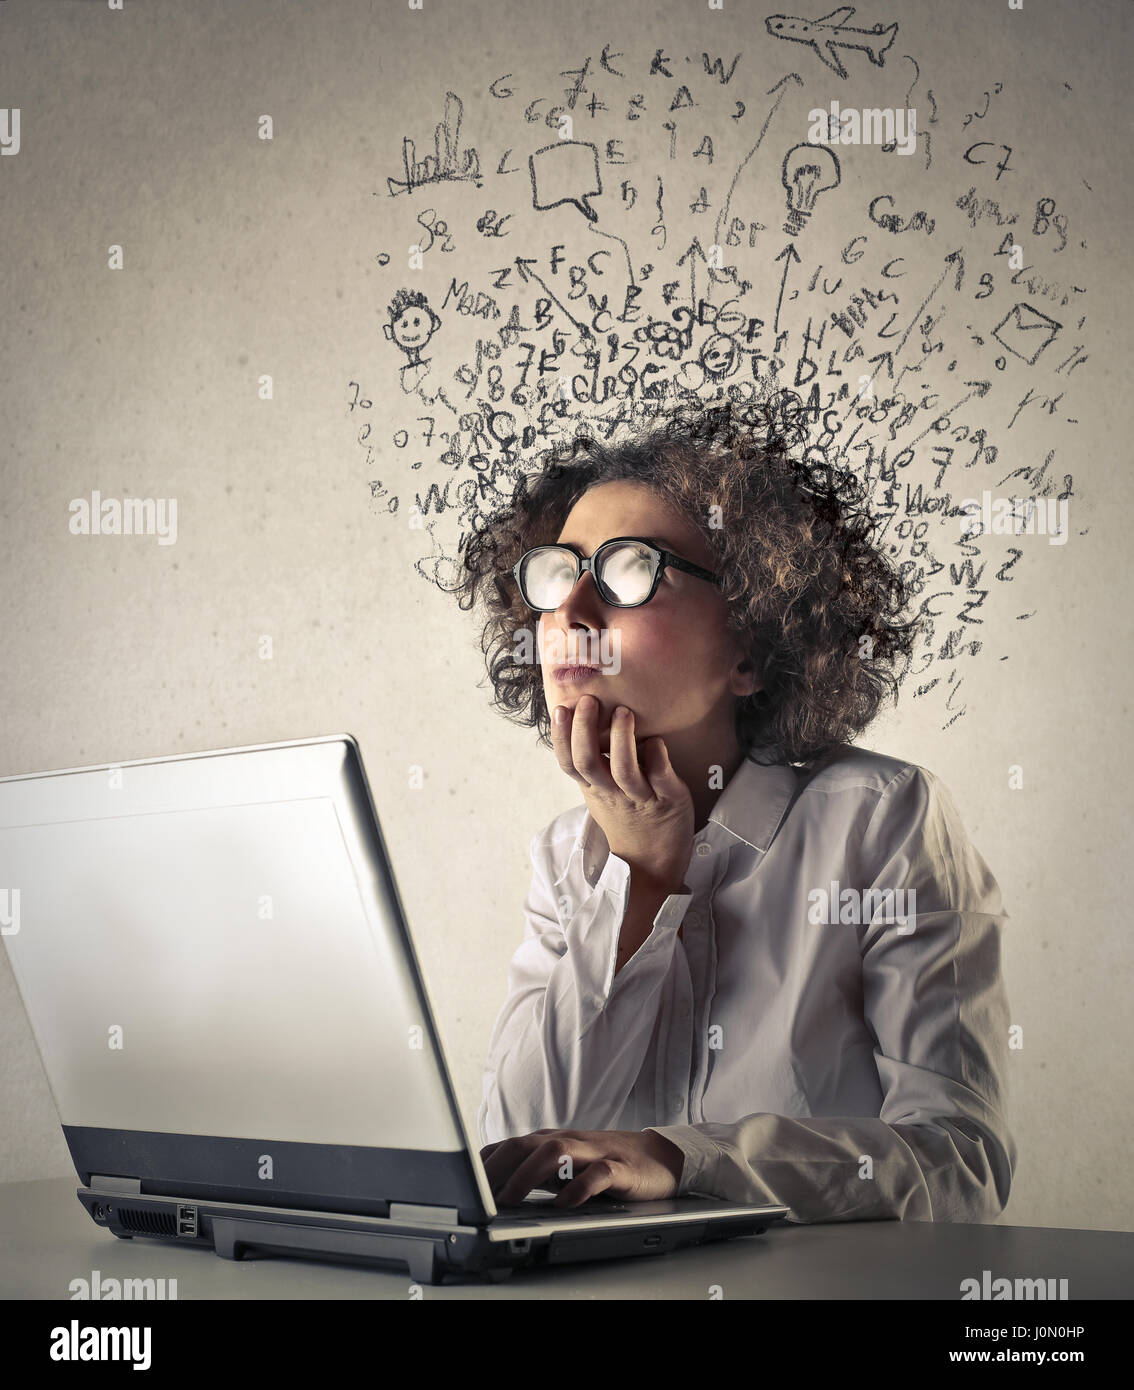 Woman thinking in front of laptop - Stock Image